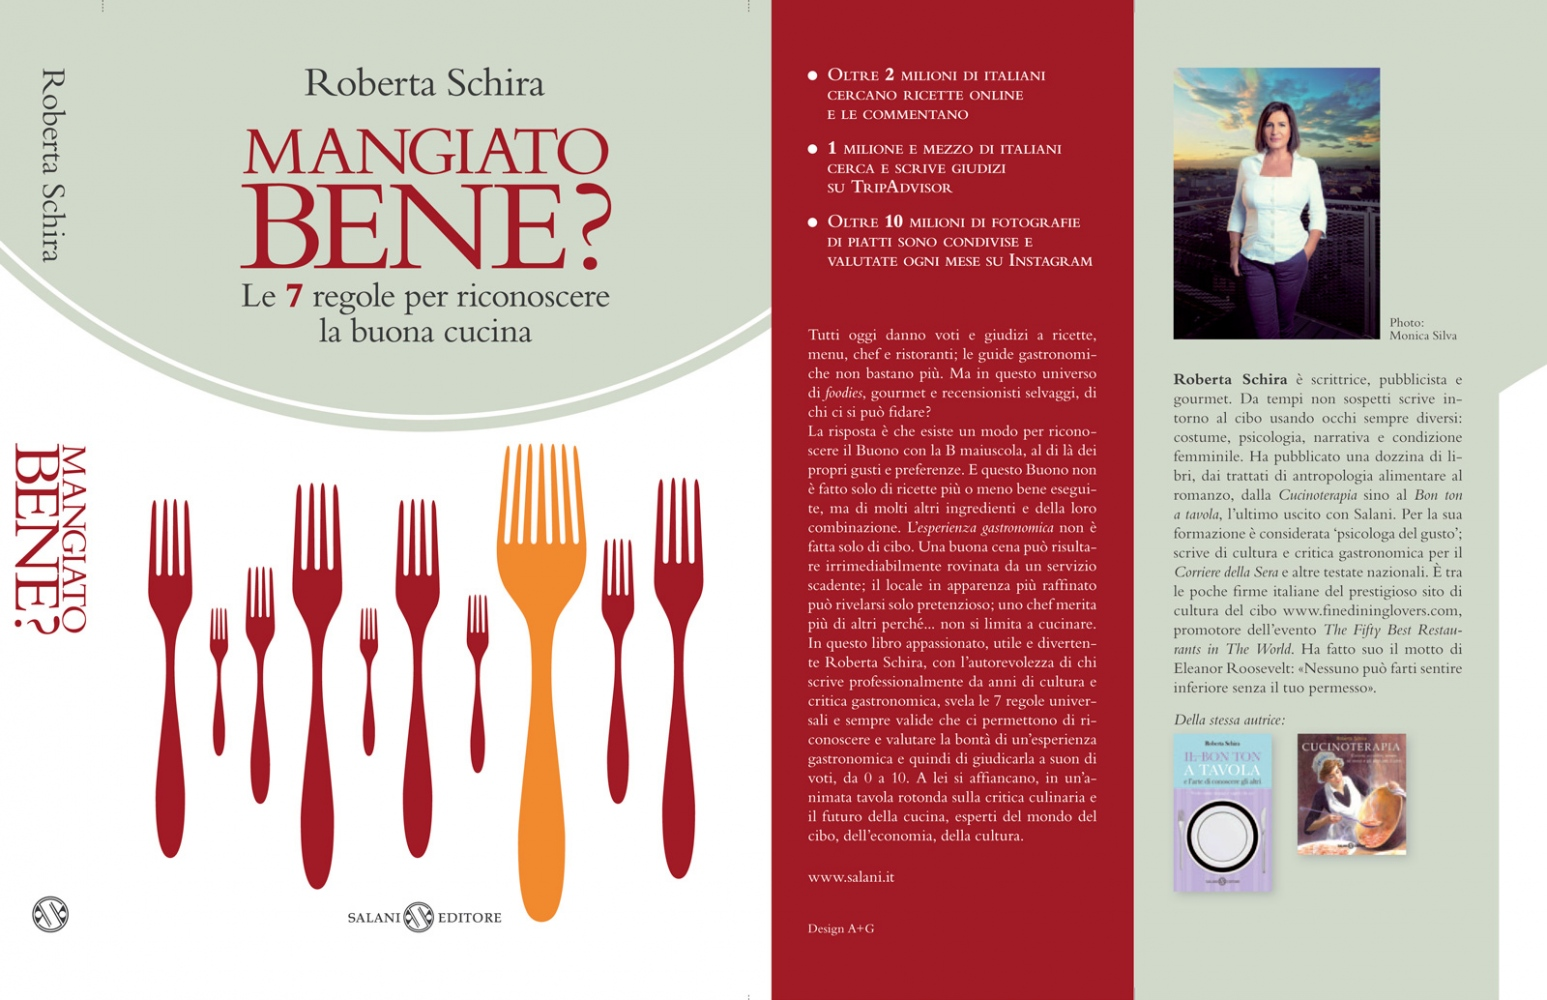 BOOK COVER ROBERTA SCHIRA 2014